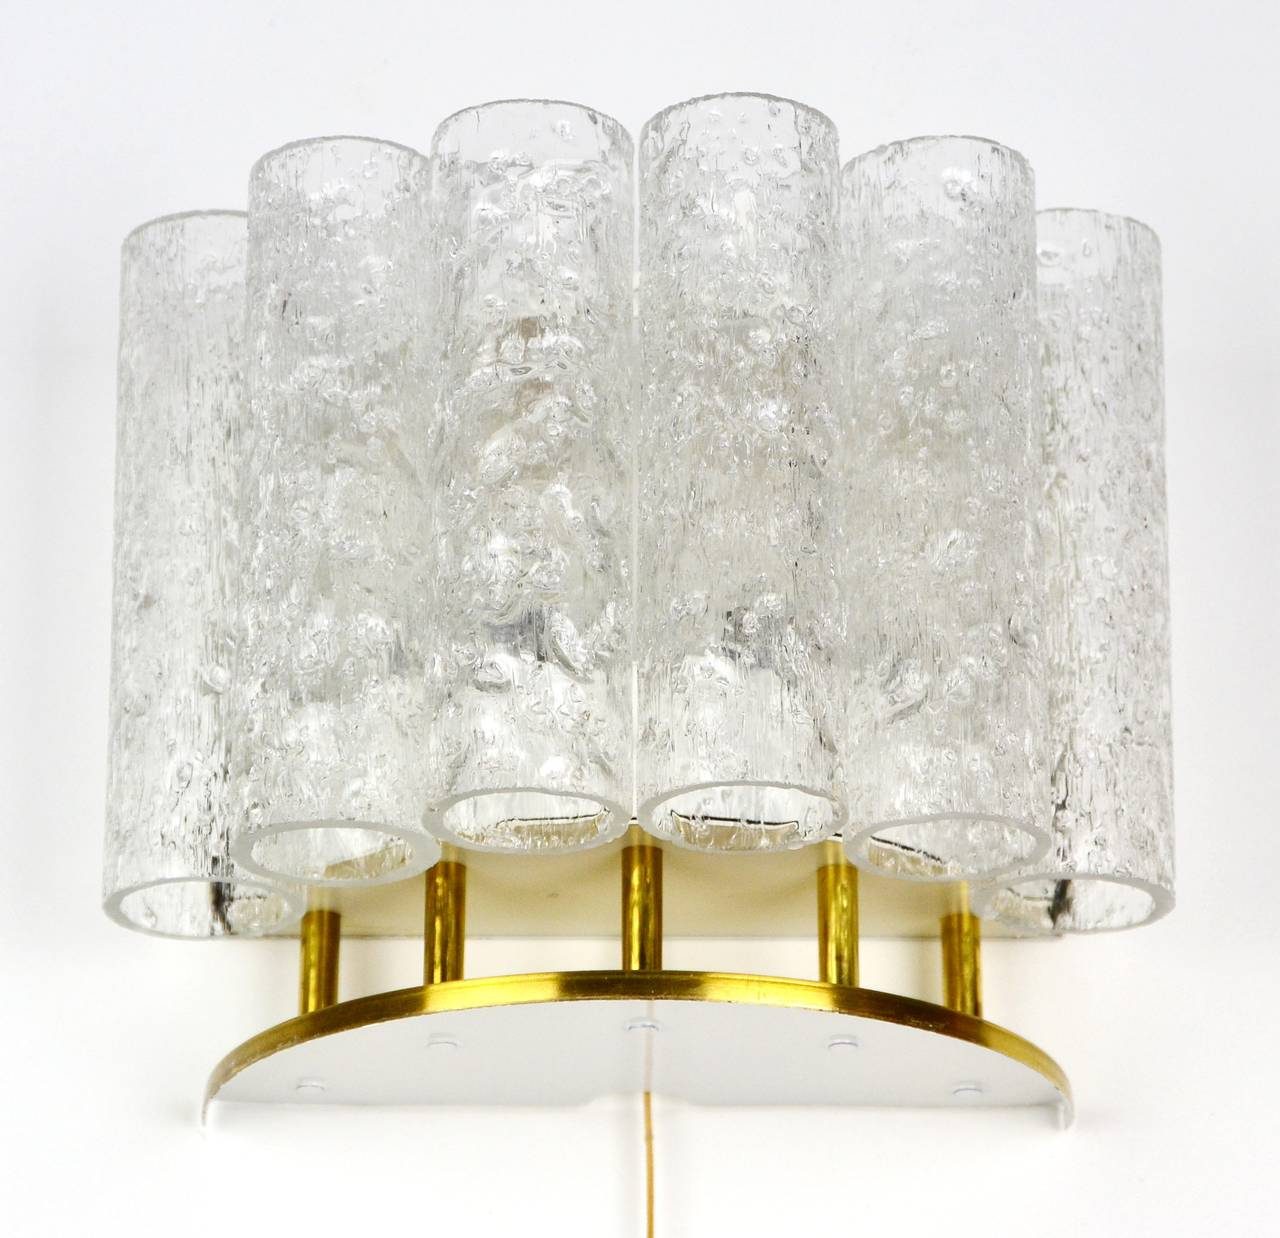 Glass Tube Wall Lights : Ice Glass Tube Wall Lamp Light Sconce by Doria, 1960s For Sale at 1stdibs